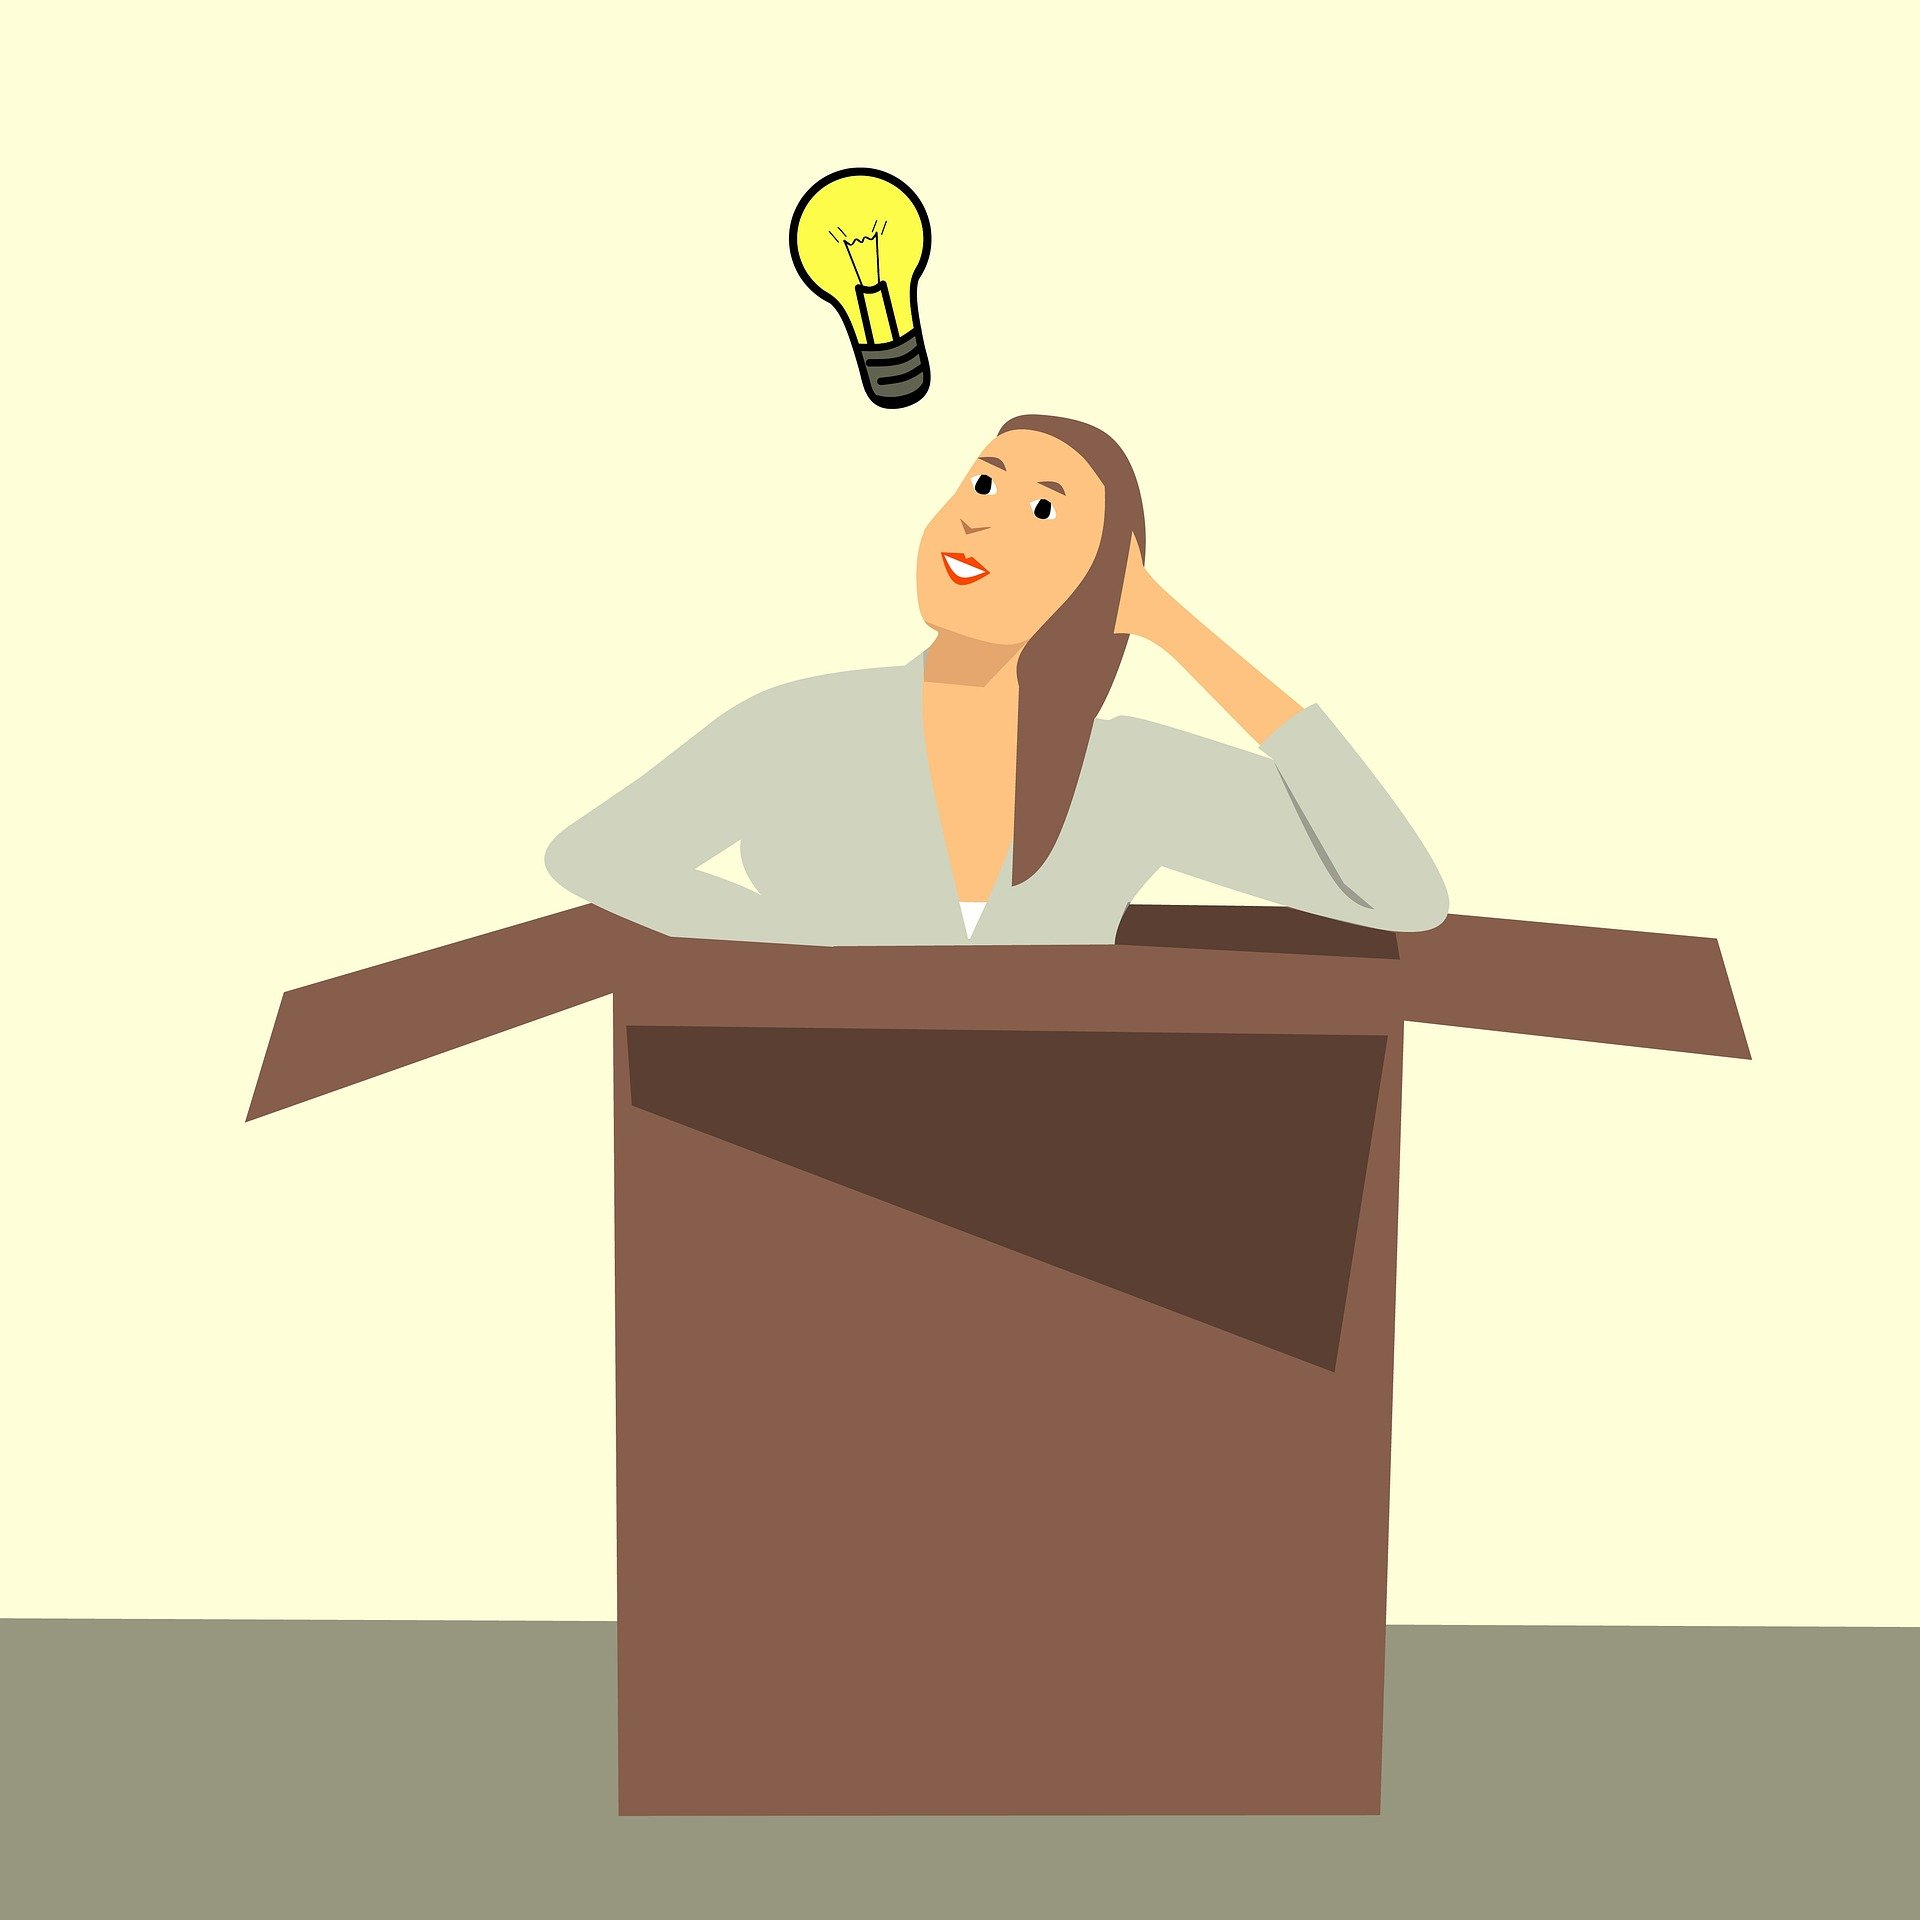 Cartoon woman in a box with a lightbulb above her hear